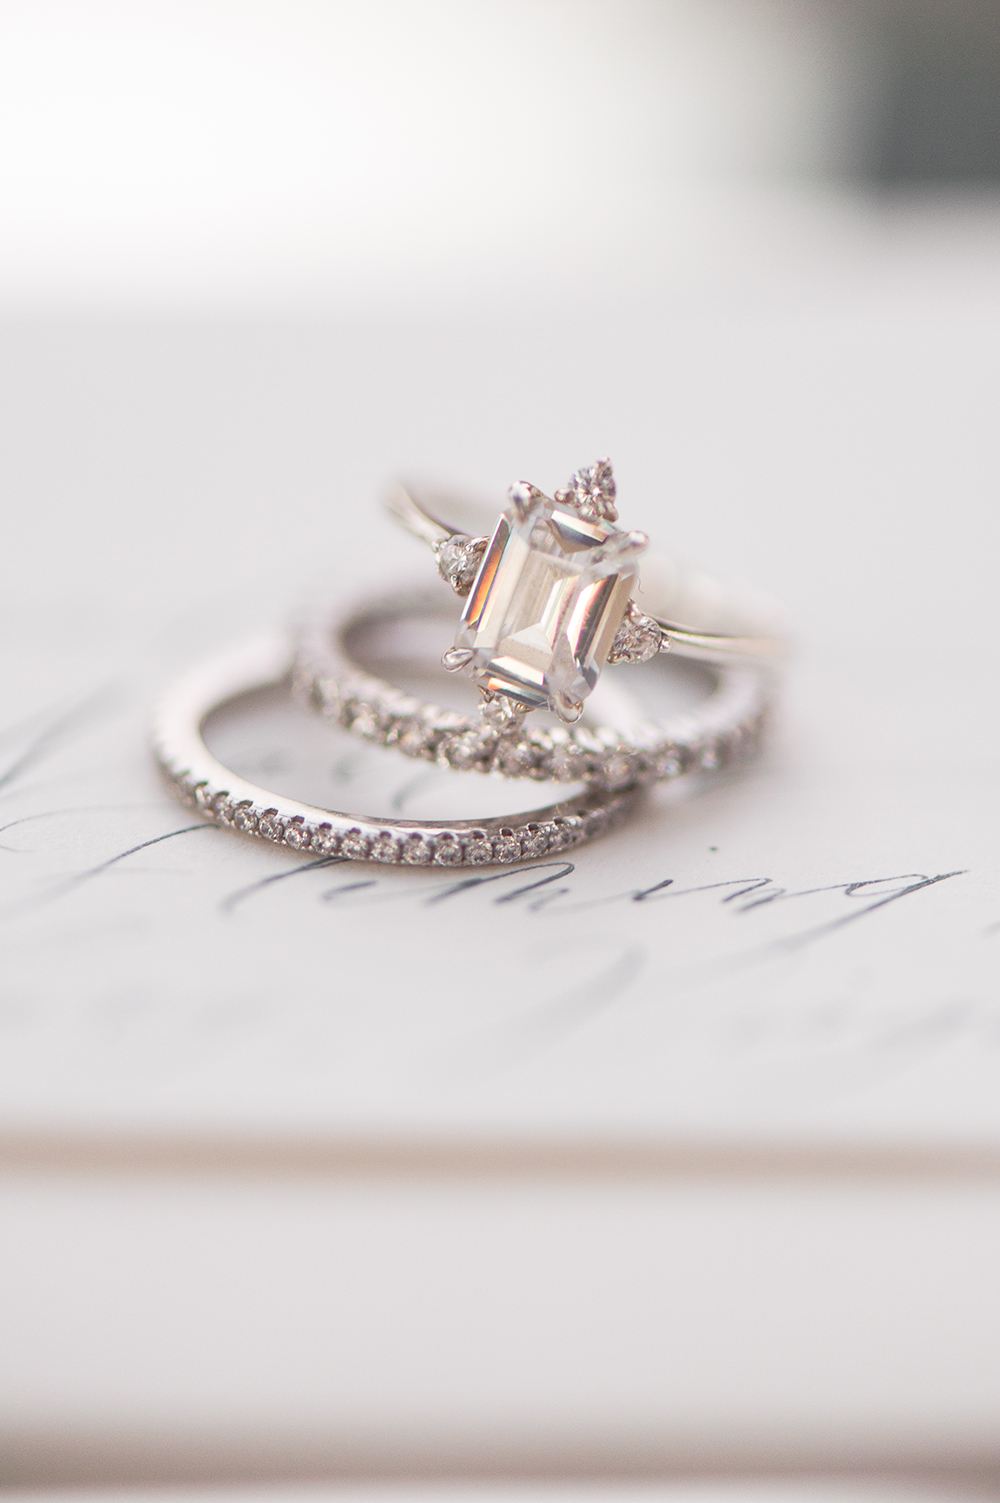 unique engagement rings - photo by Jenny B Photos http://ruffledblog.com/ethereal-wedding-inspiration-with-vintage-accents